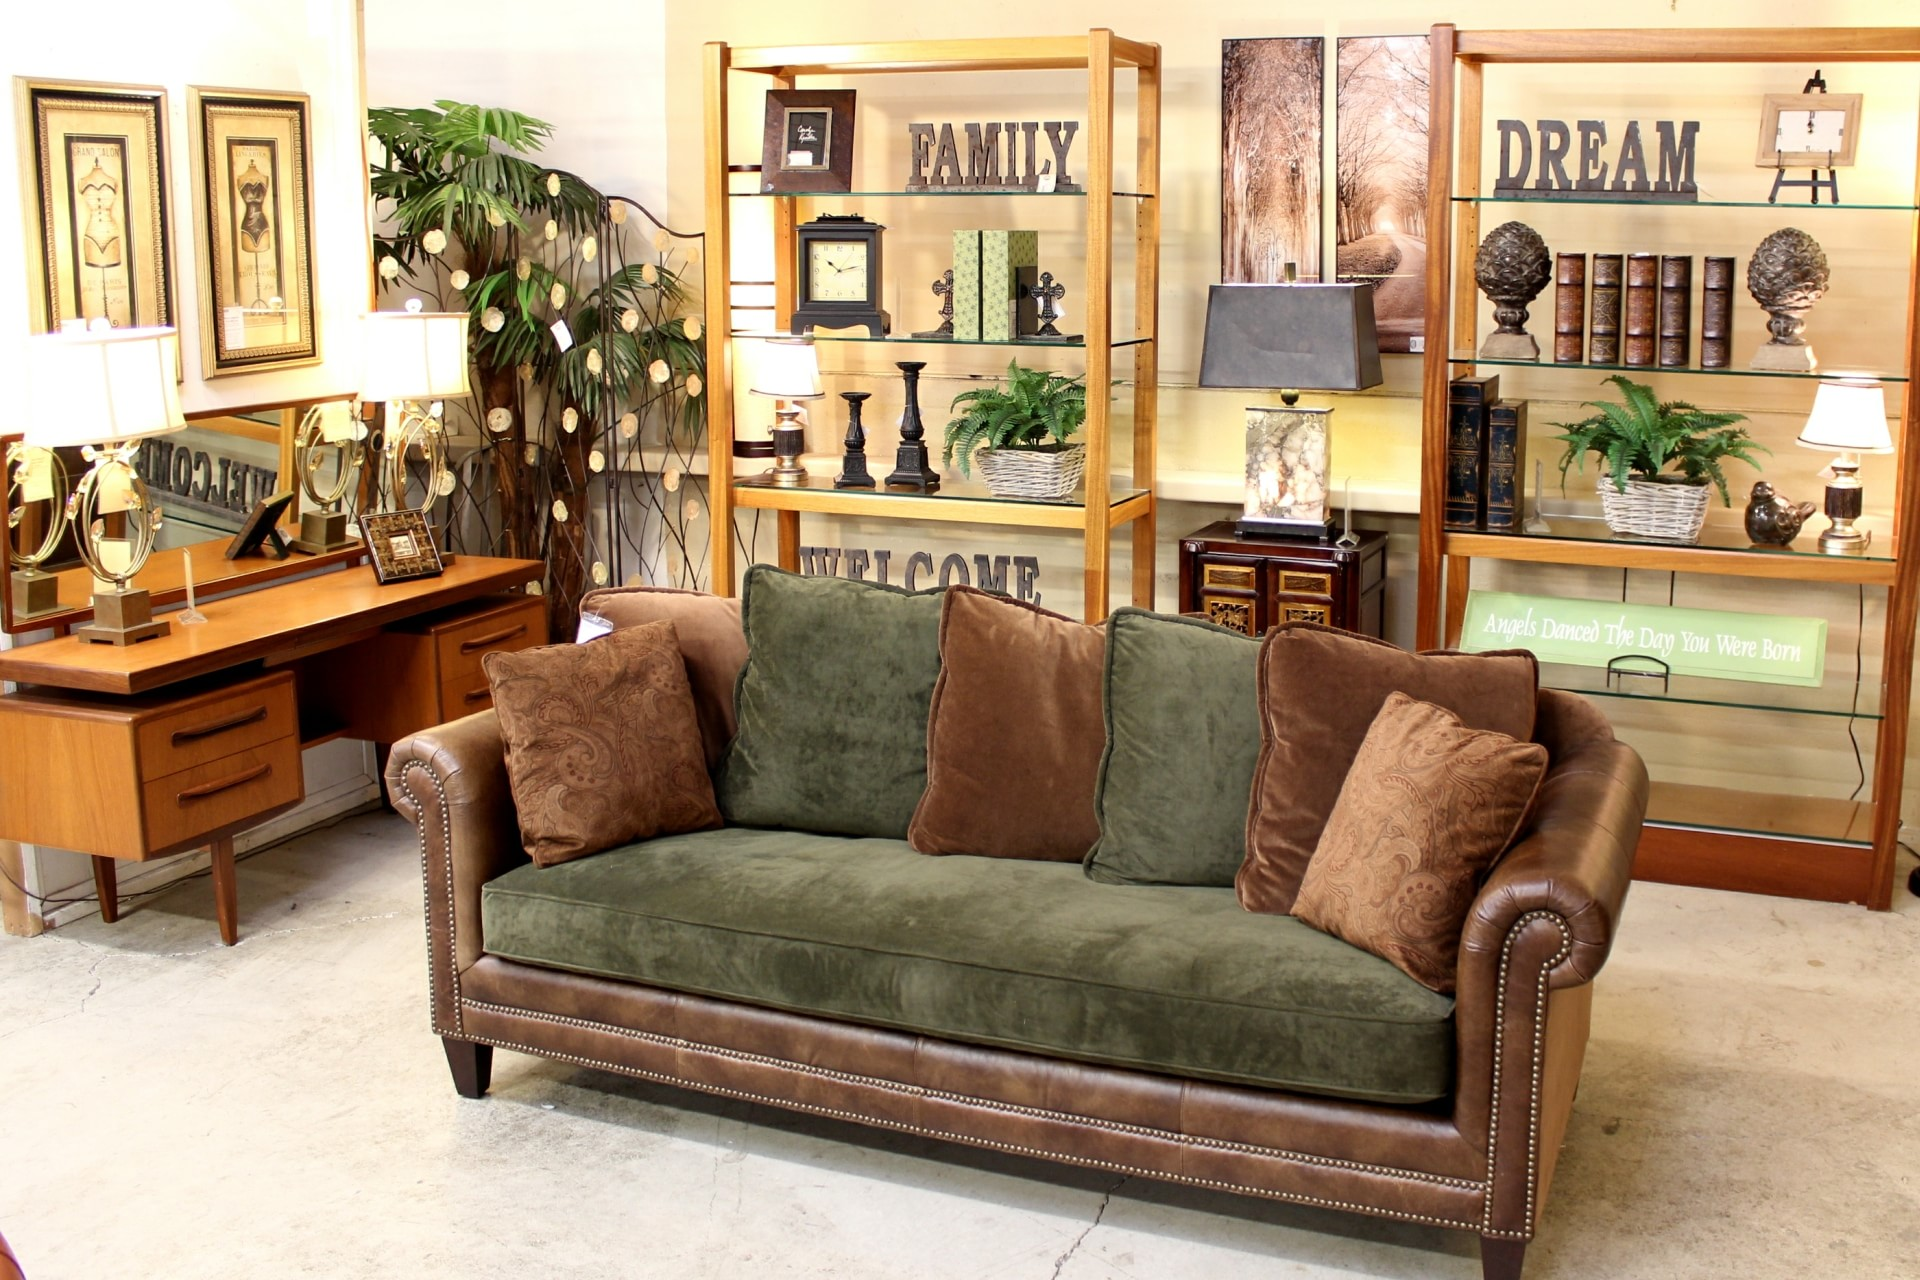 Home Interior Stores Near Me Decor Gorgeous Upscale Consignment  Upscale Used Furniture & Decor Design Inspiration